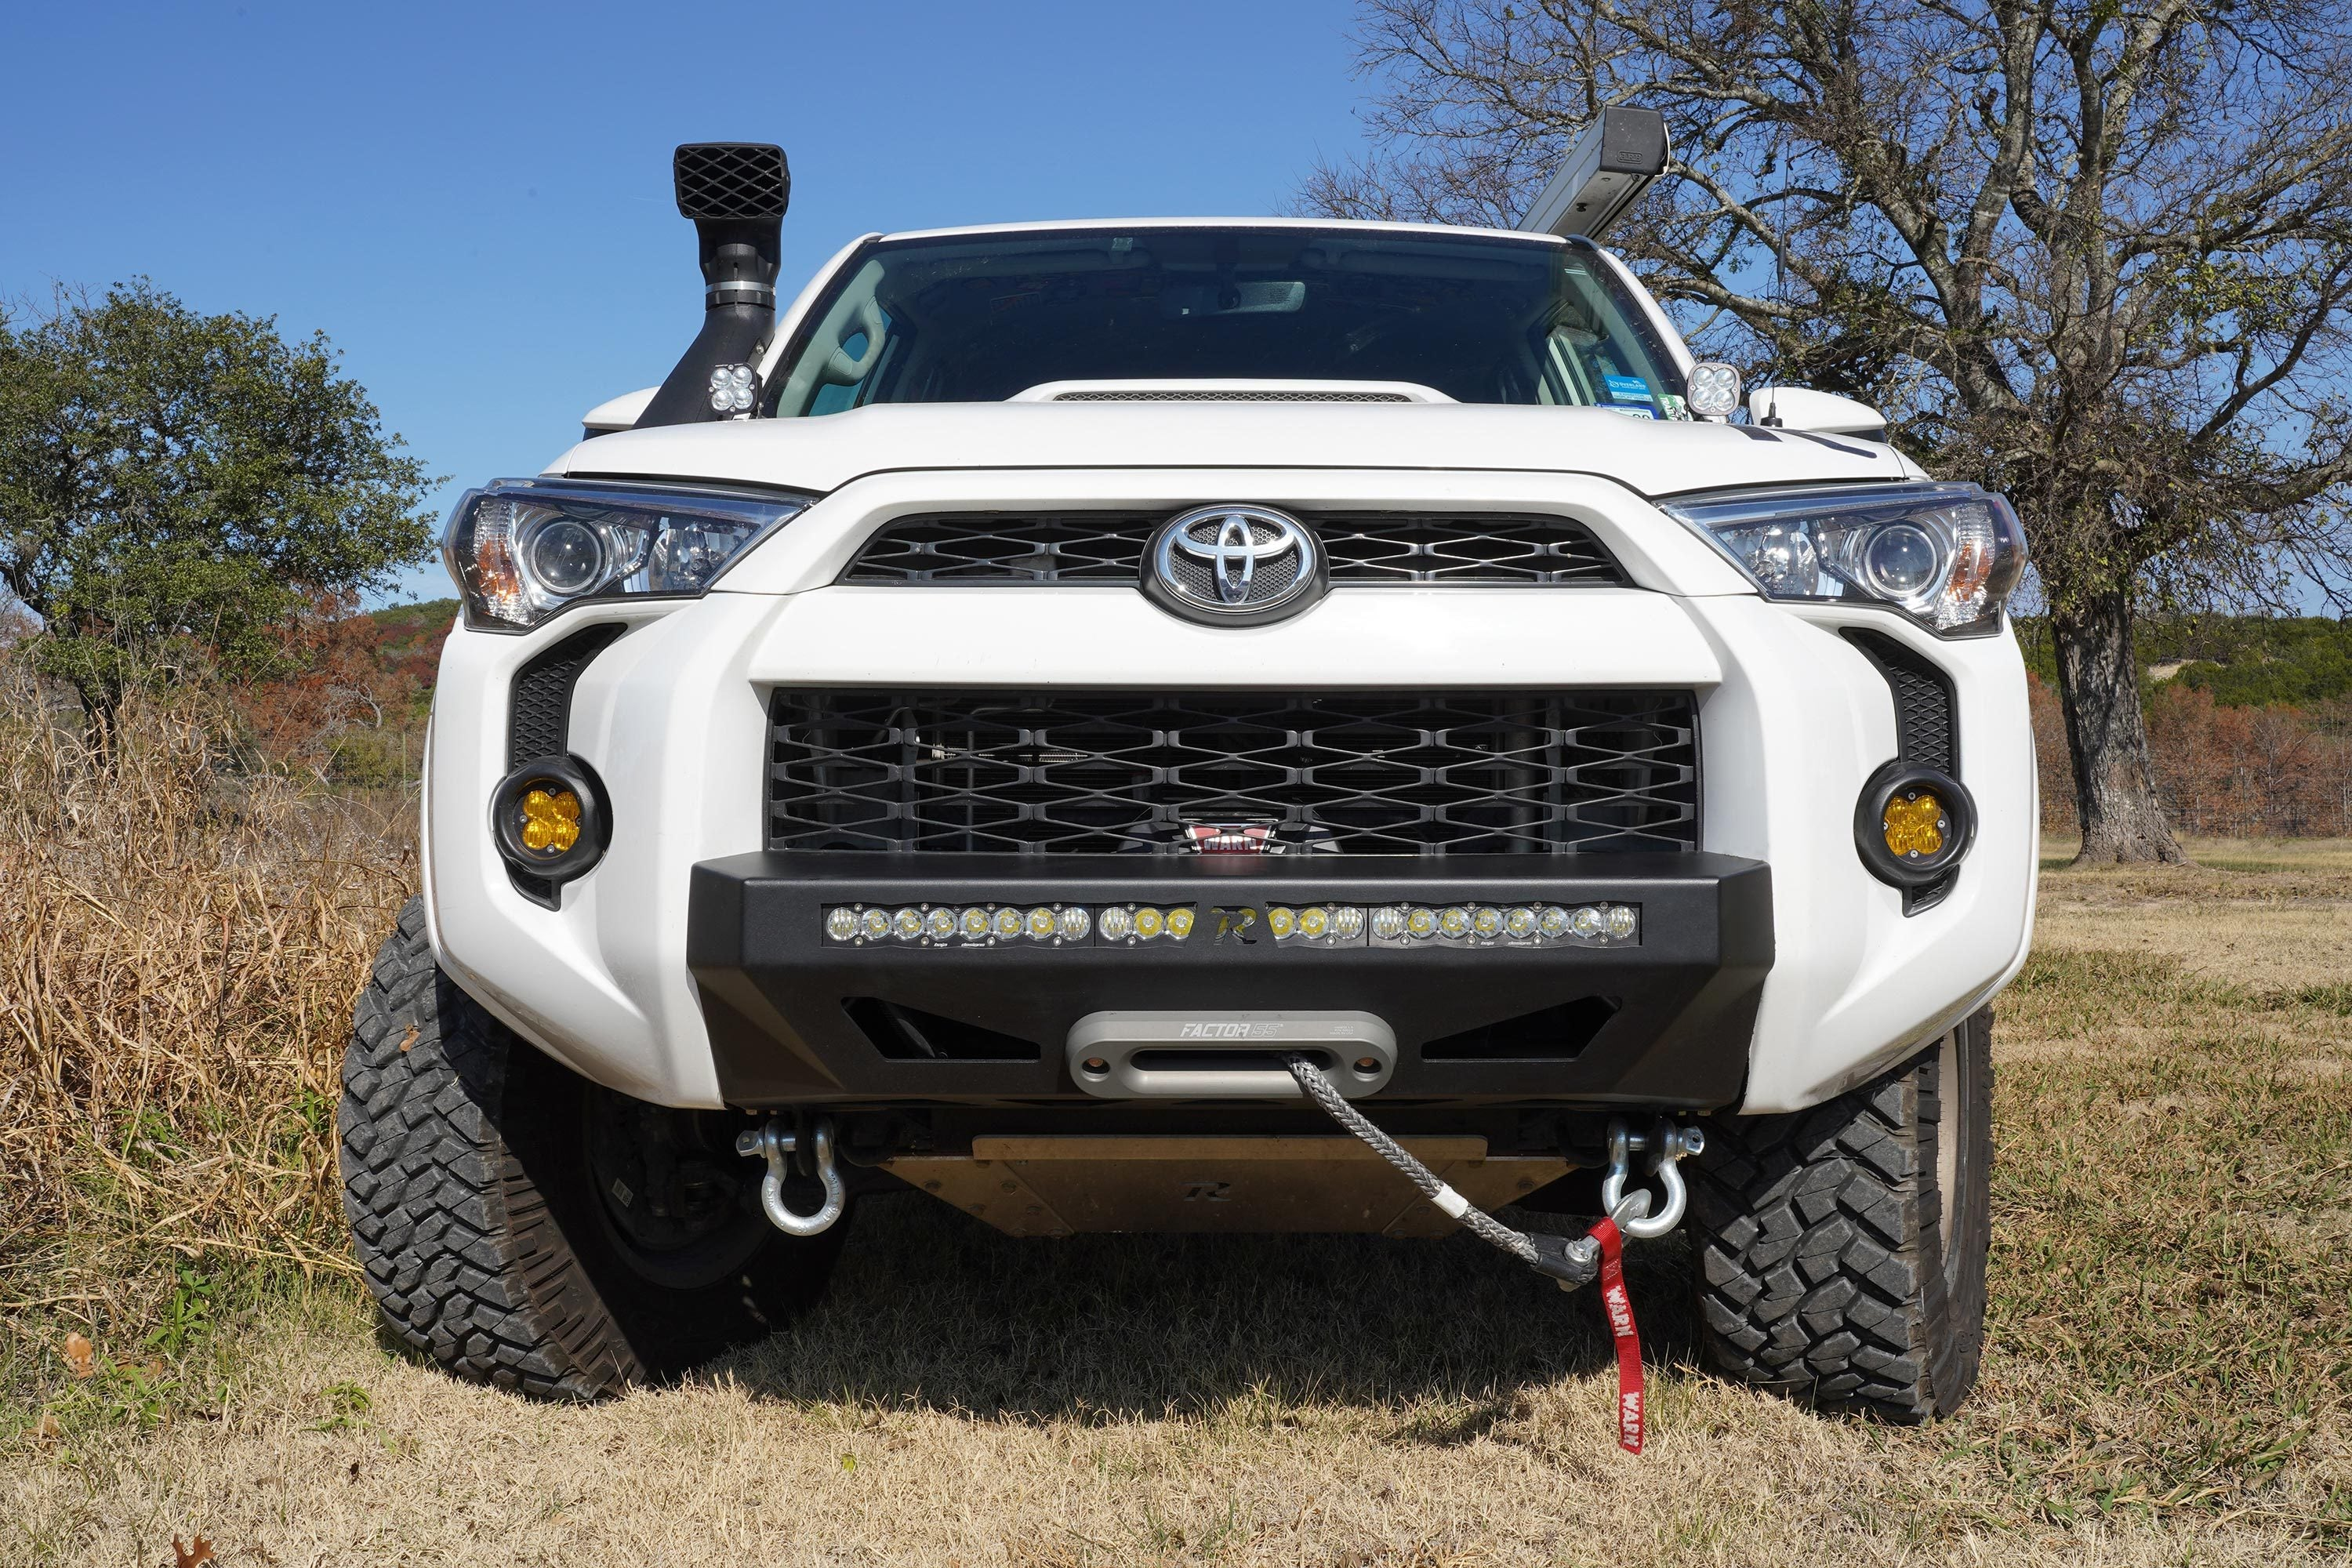 LOW PROFILE  BUMPER - TOYOTA 5TH GEN 4RUNNER 2014-2020 - 4x4 Runners